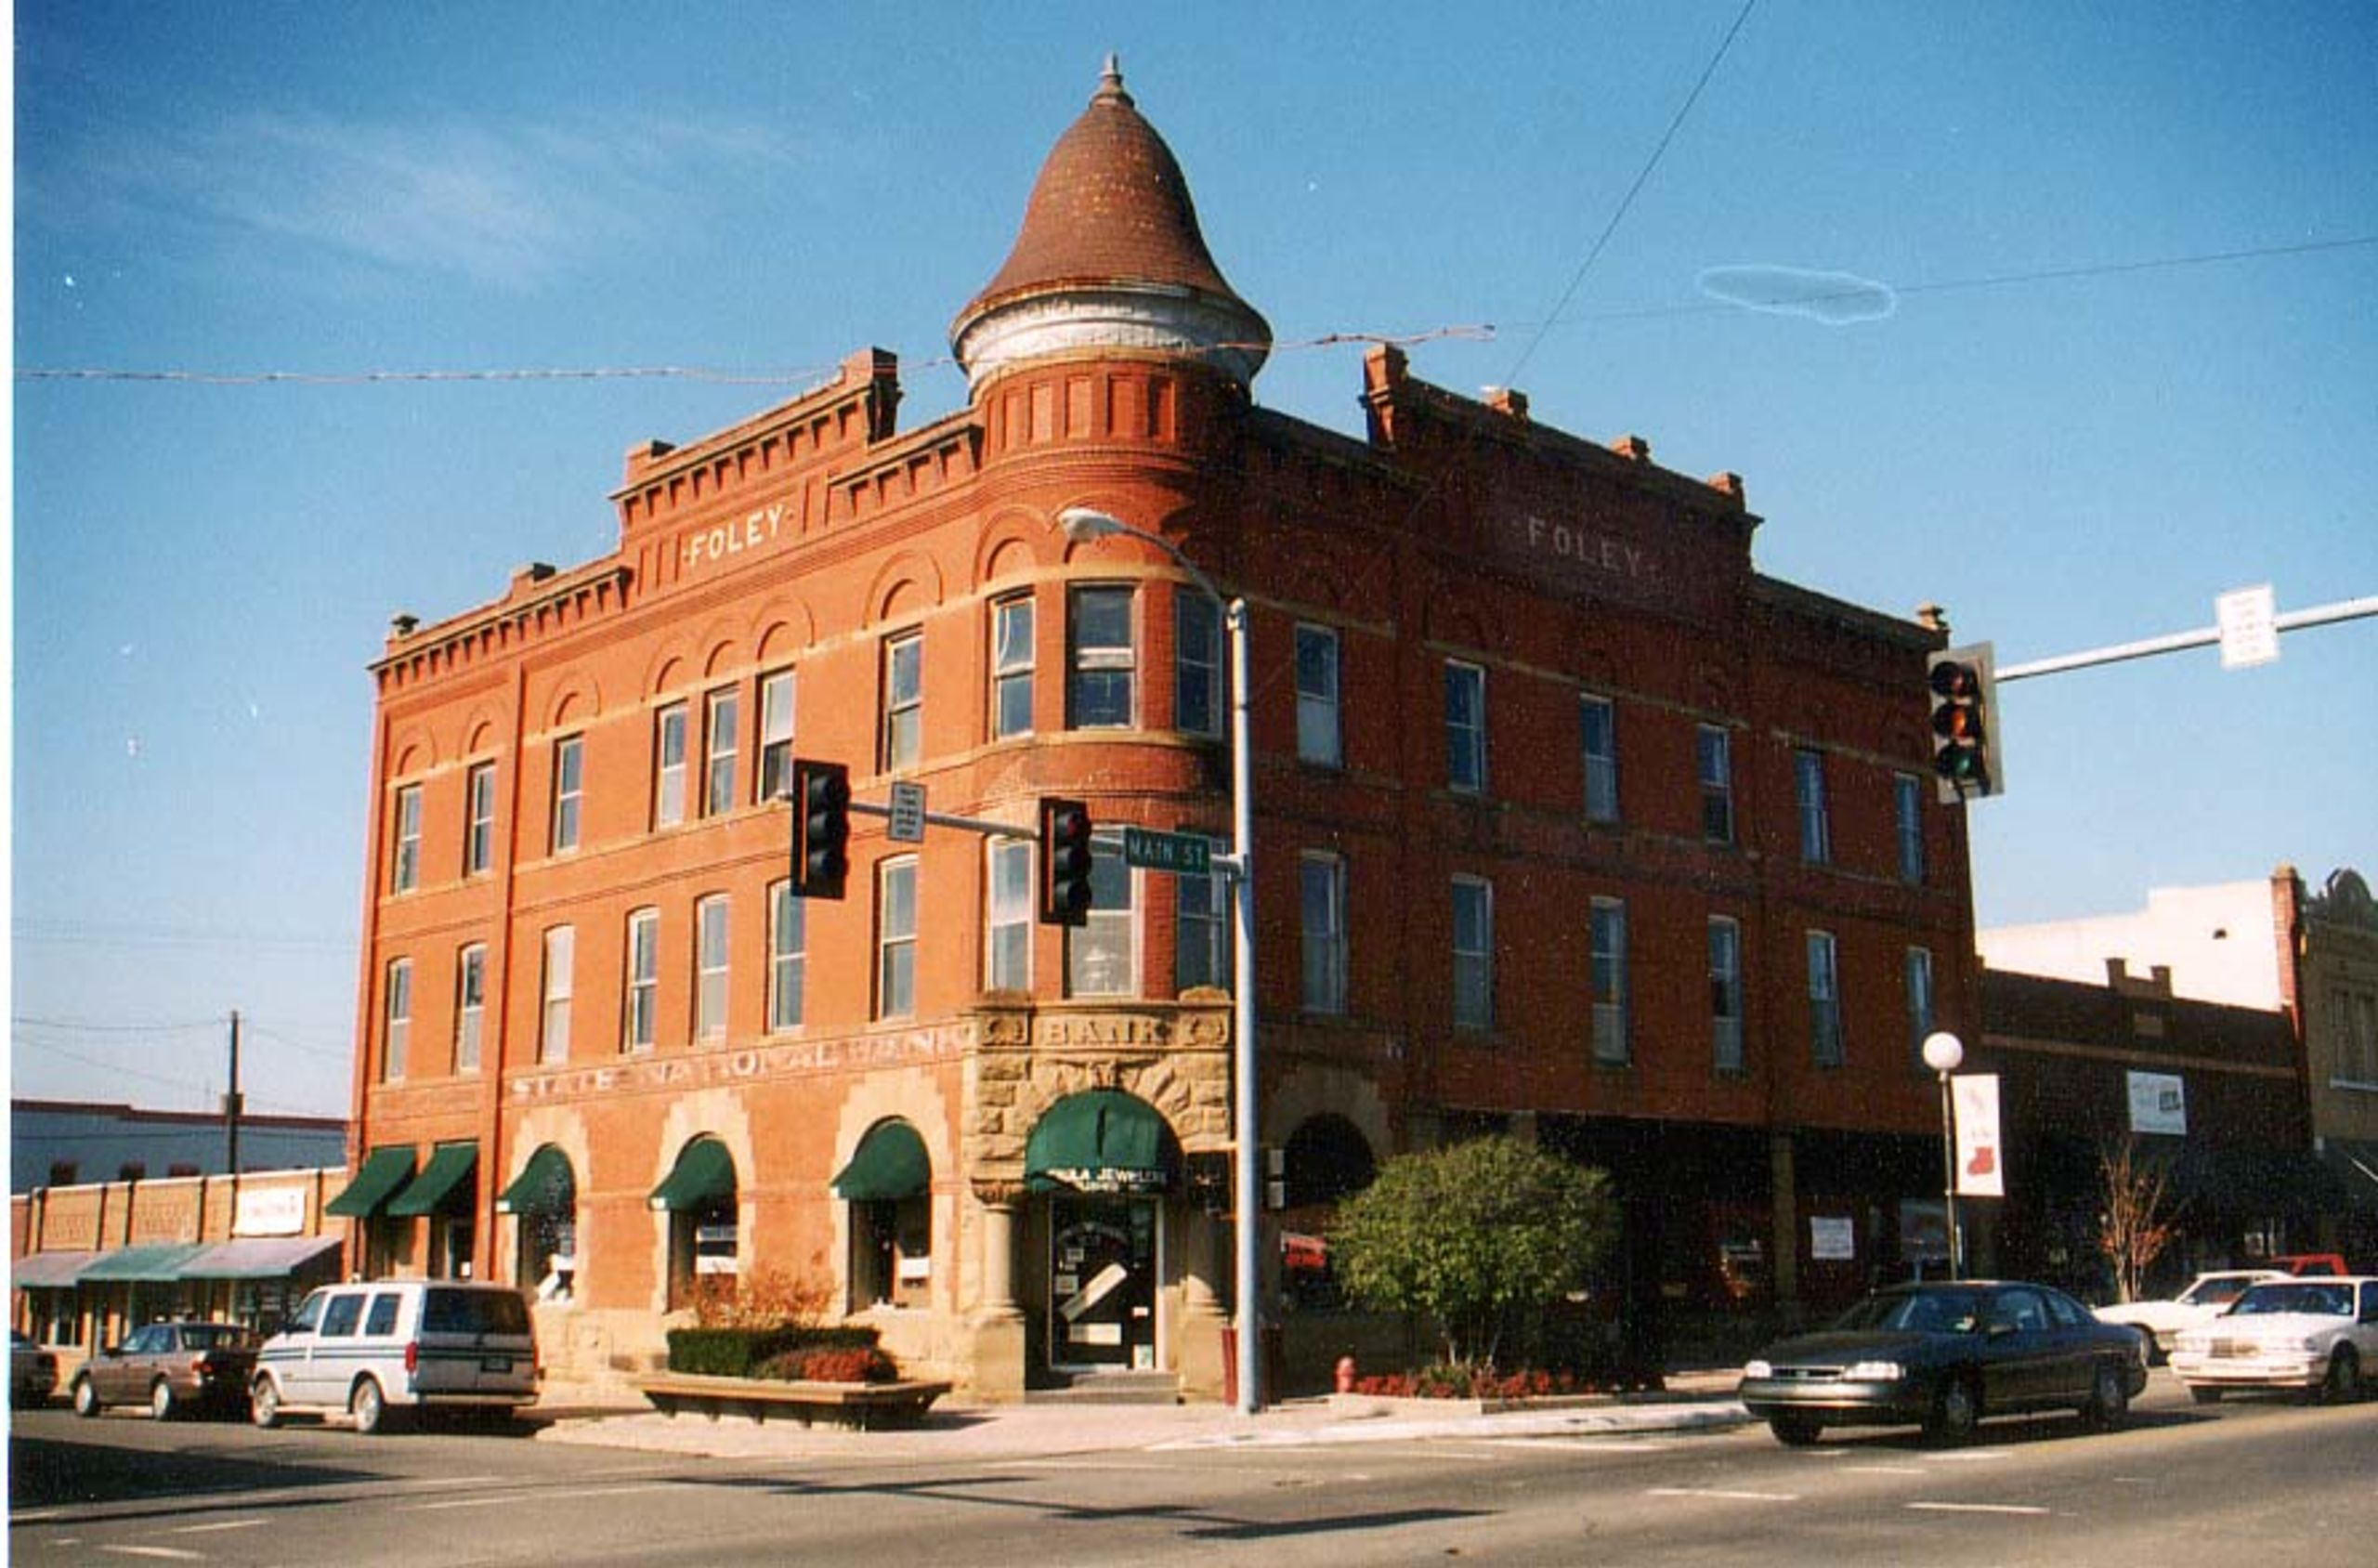 You'll love historic downtown Eufaula